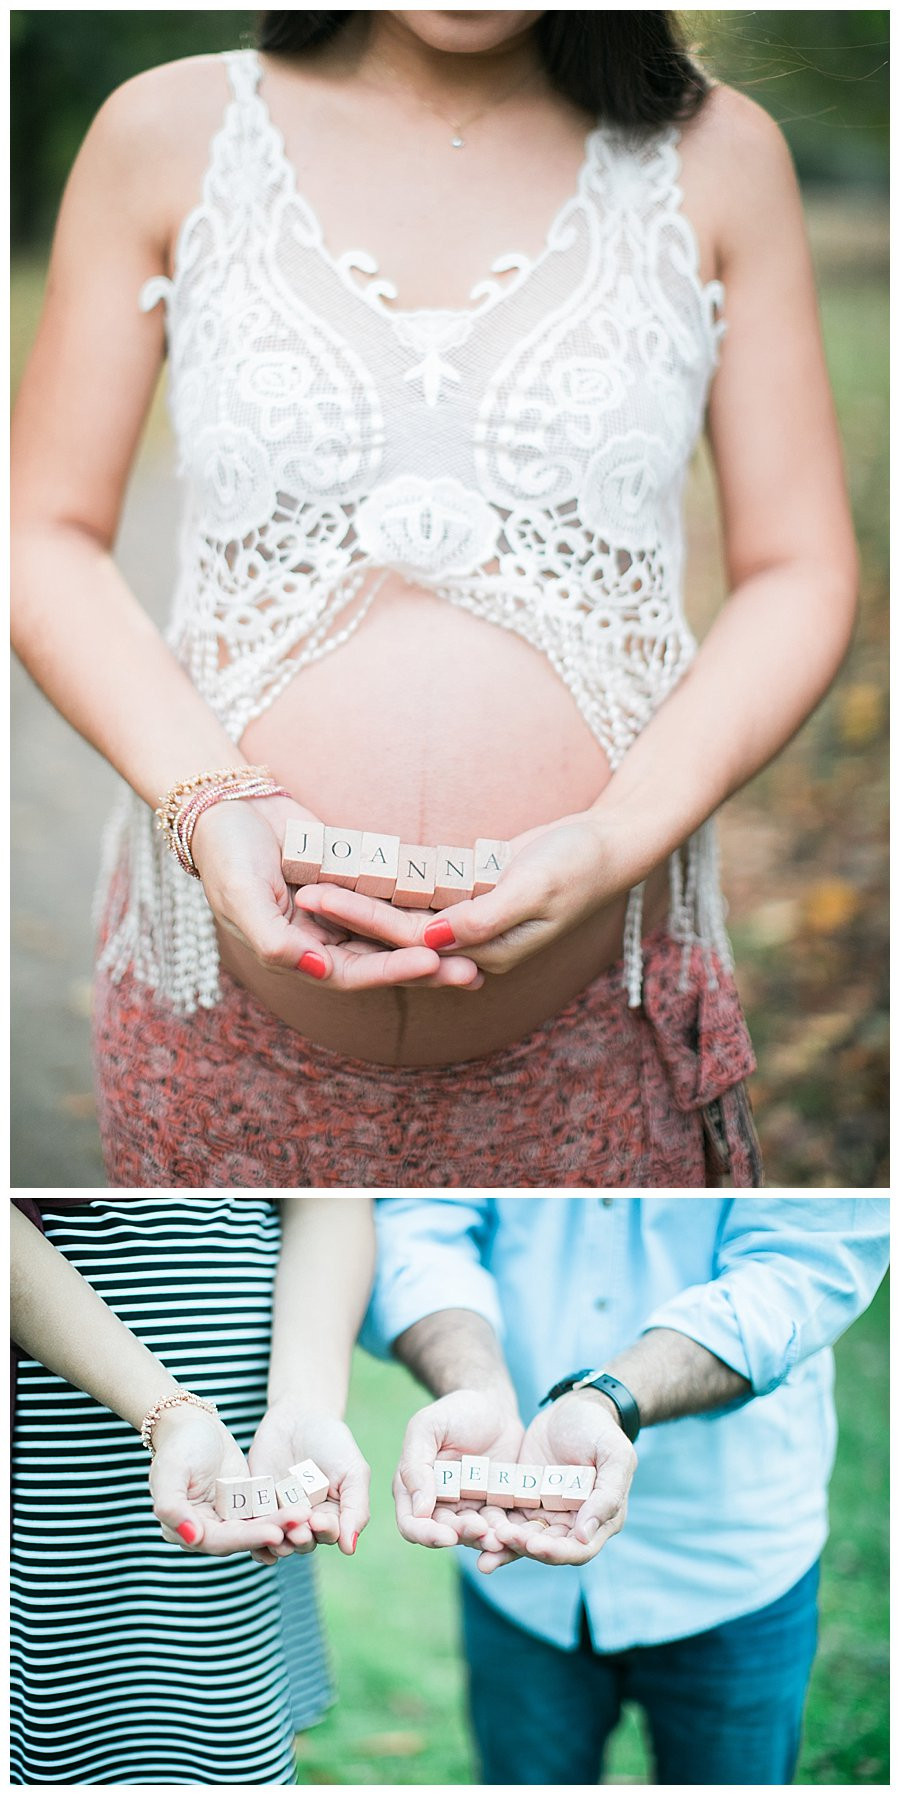 baby name spelled out in blocks for maternity photos